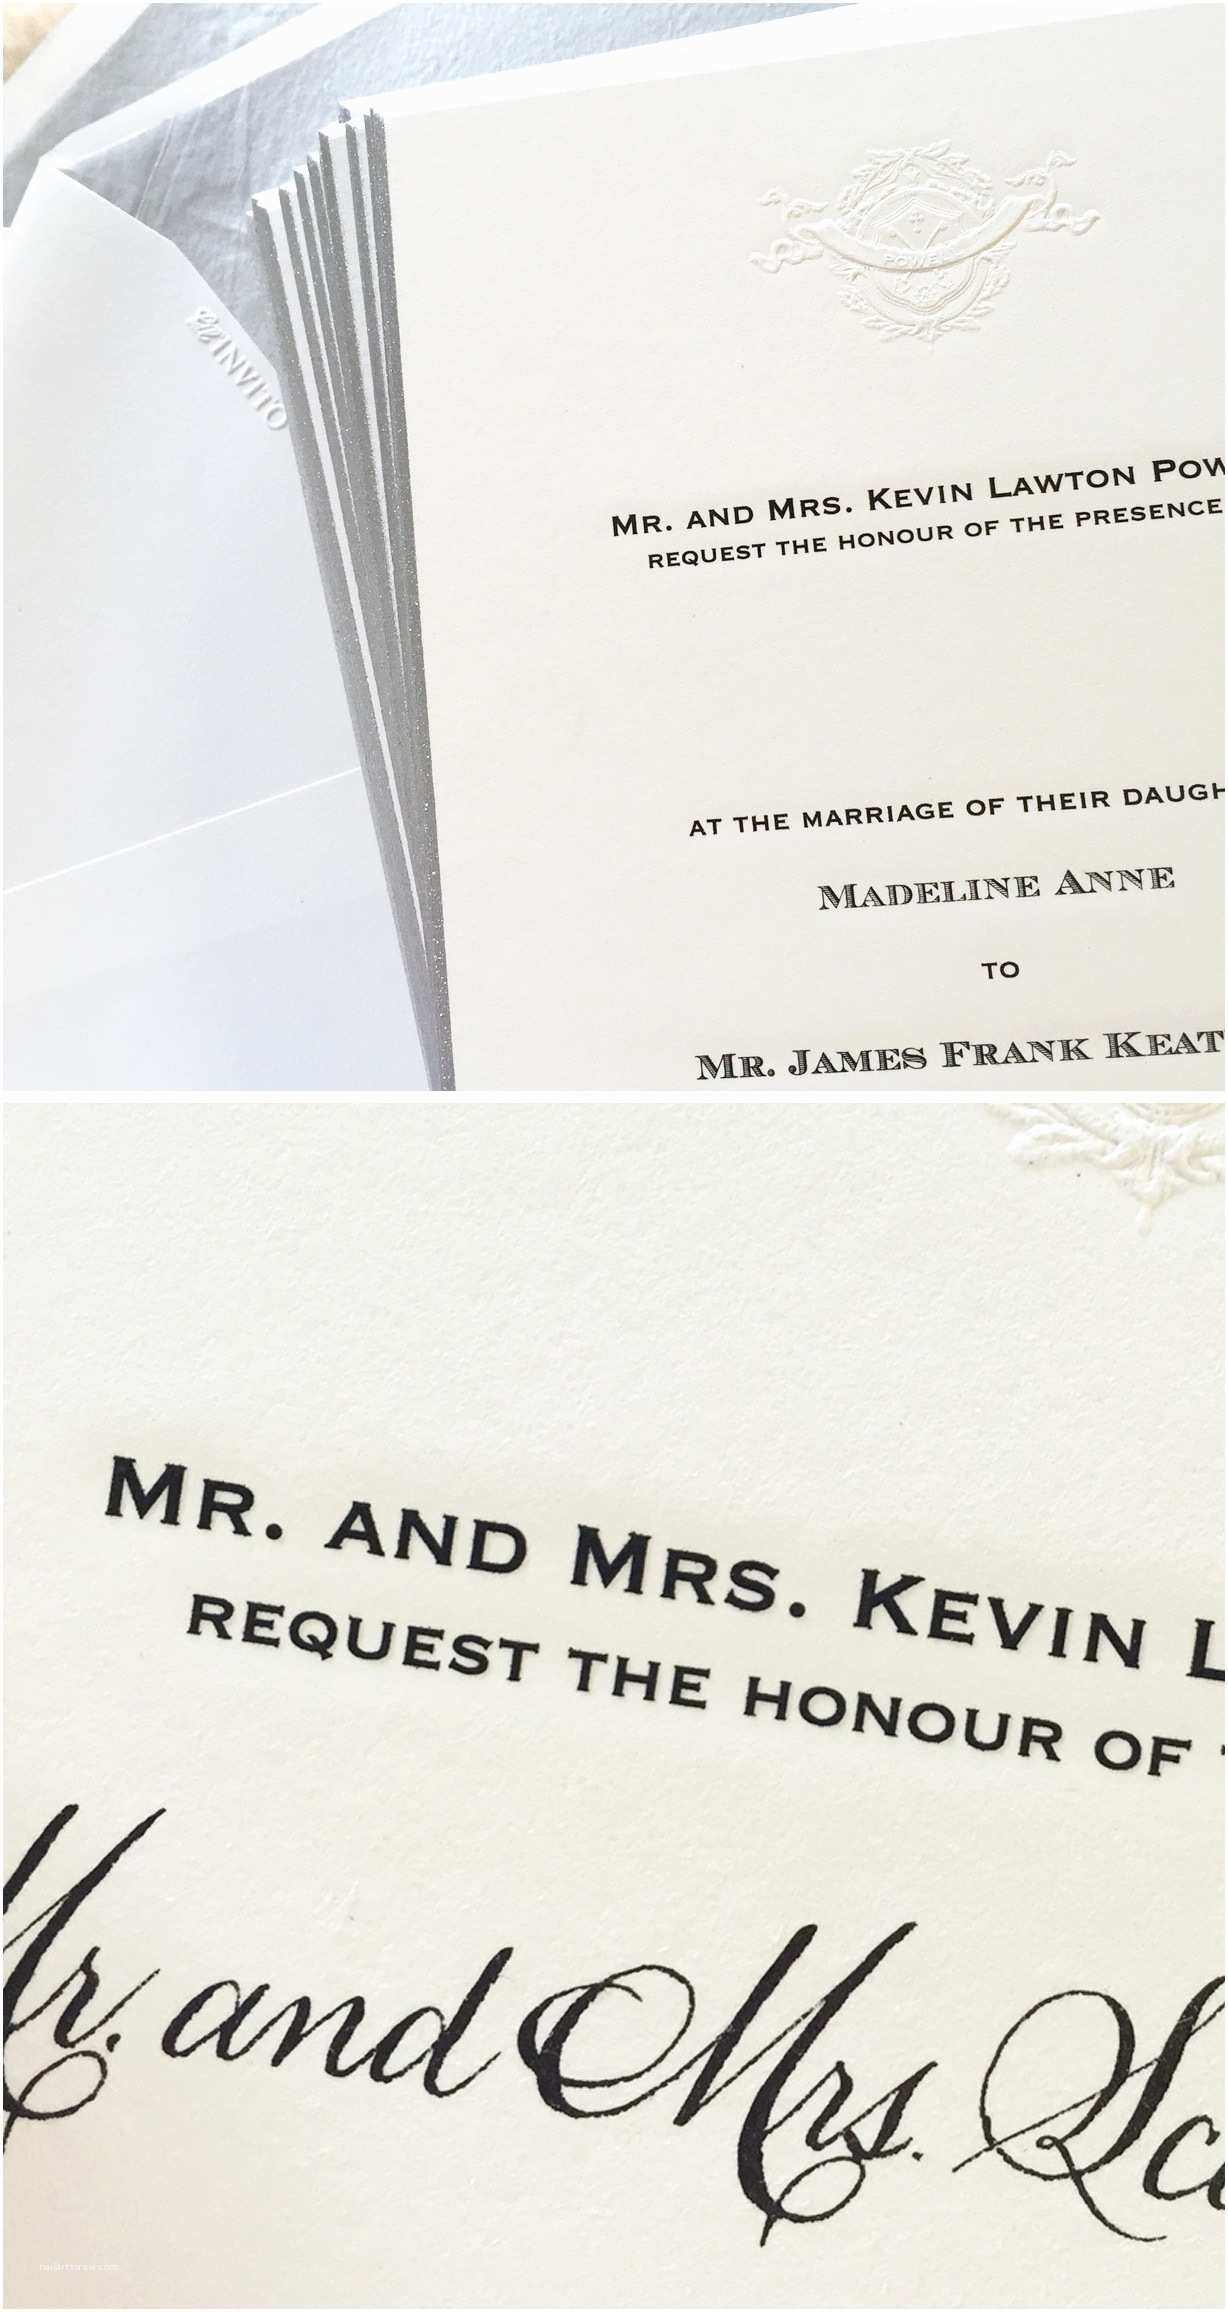 Fancy Wedding Invitations formal Wedding Invitations with Written Guest Names